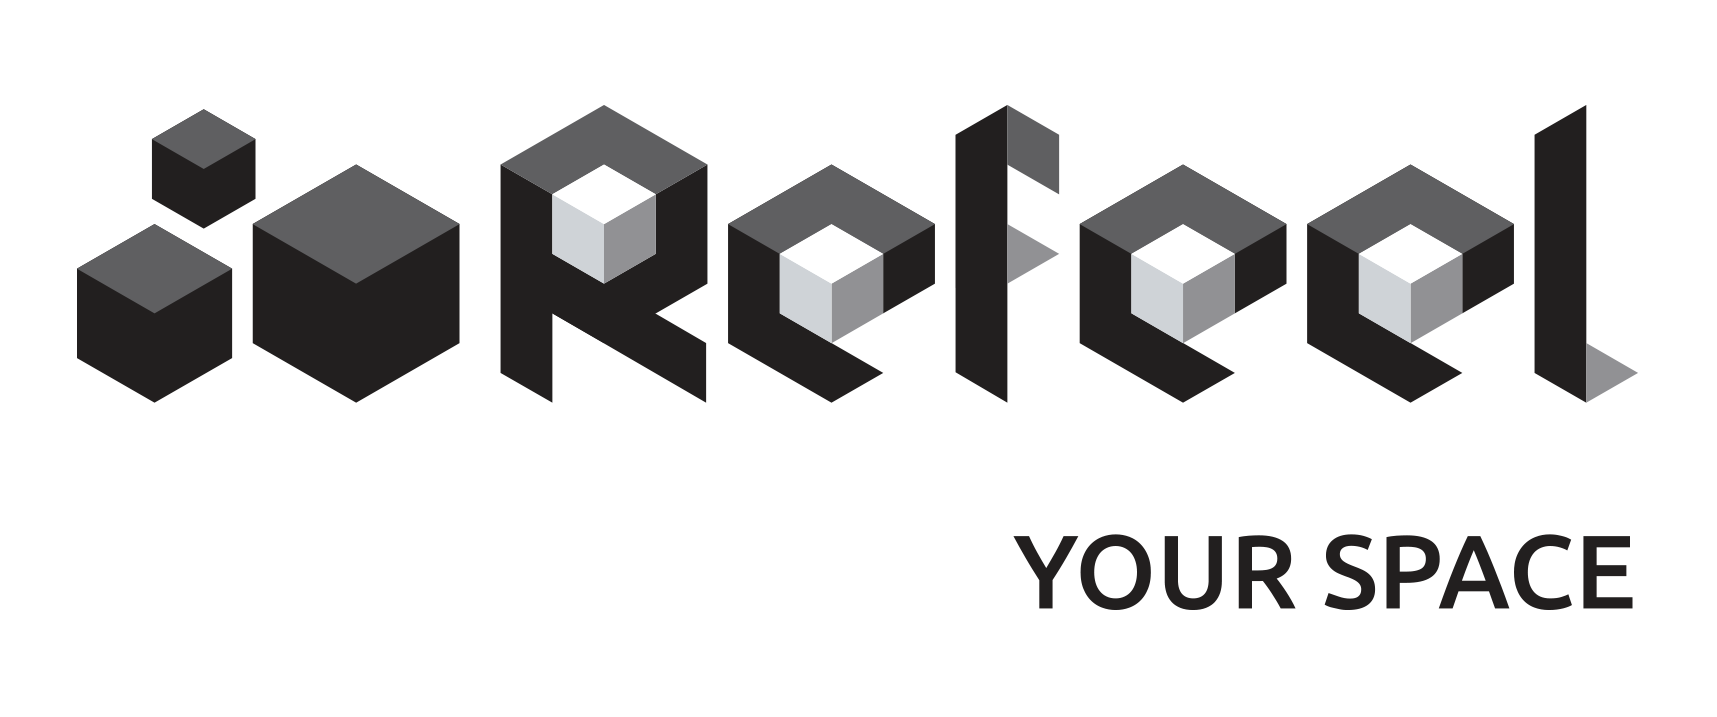 refeelYourSpace-logo.png